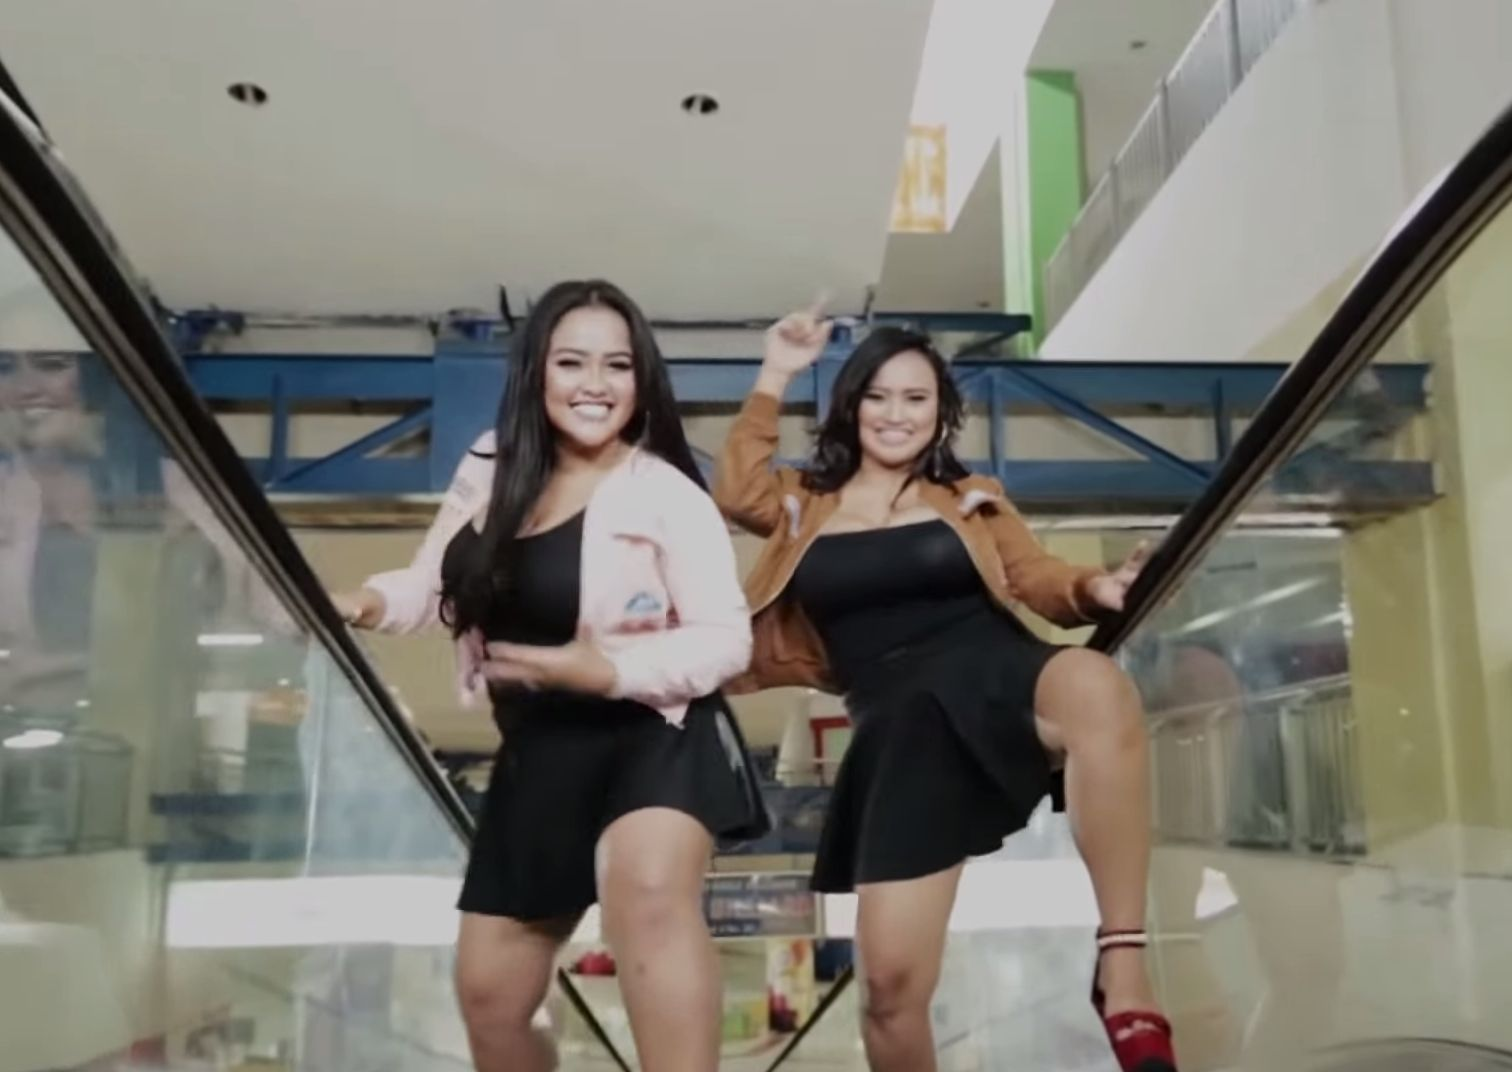 Indonesia's 'Watermelons Duo' singers rapped for suggestive